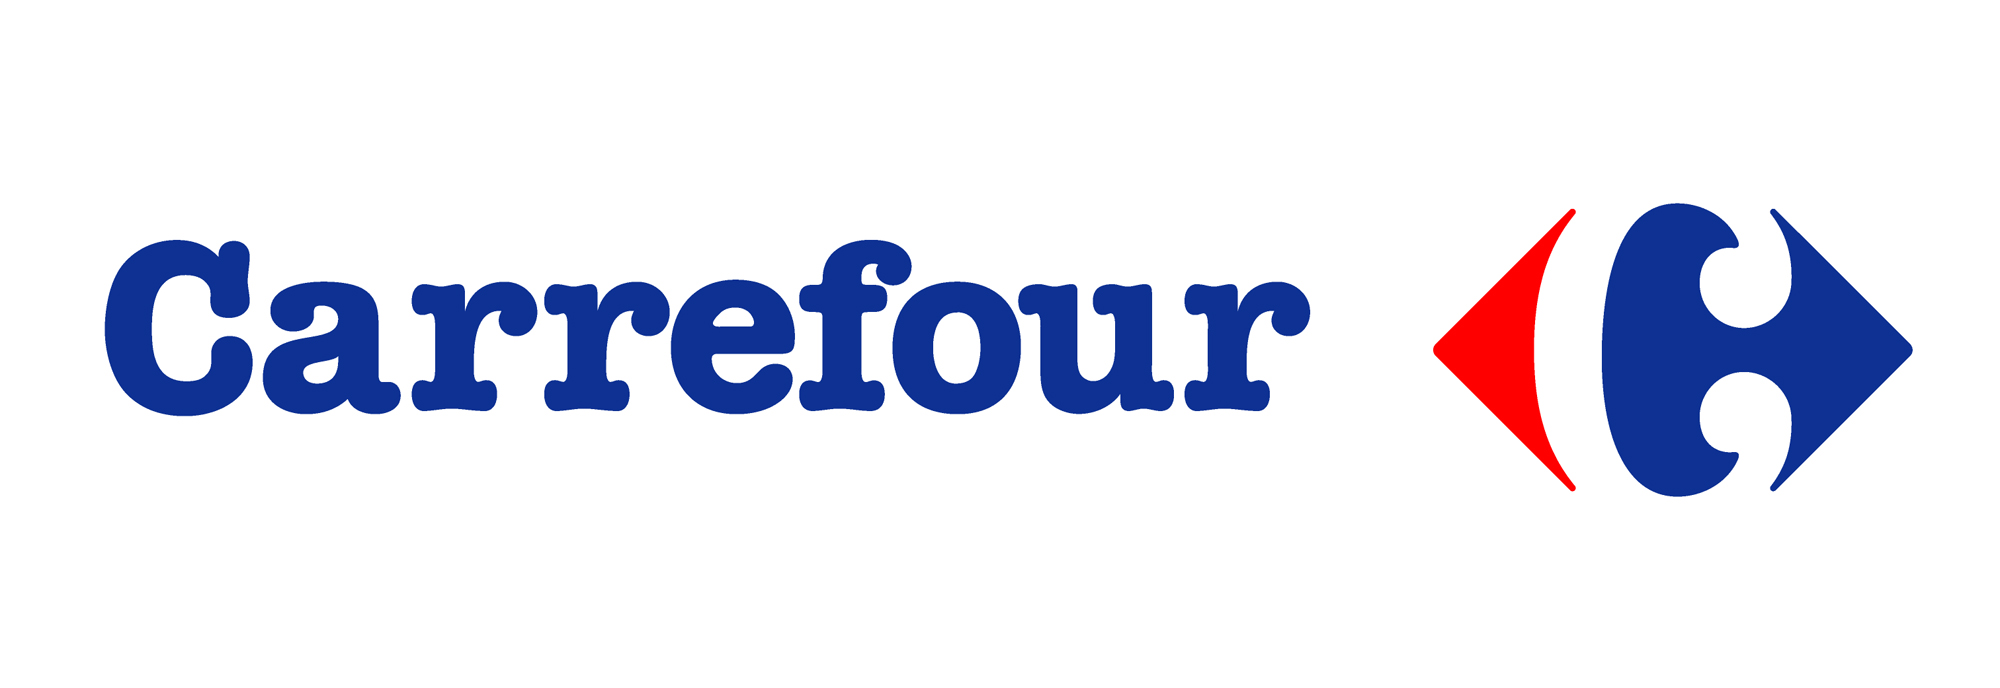 http://img2.wikia.nocookie.net/__cb20130711132457/logopedia/images/0/09/Logo-carrefour-1-.jpg